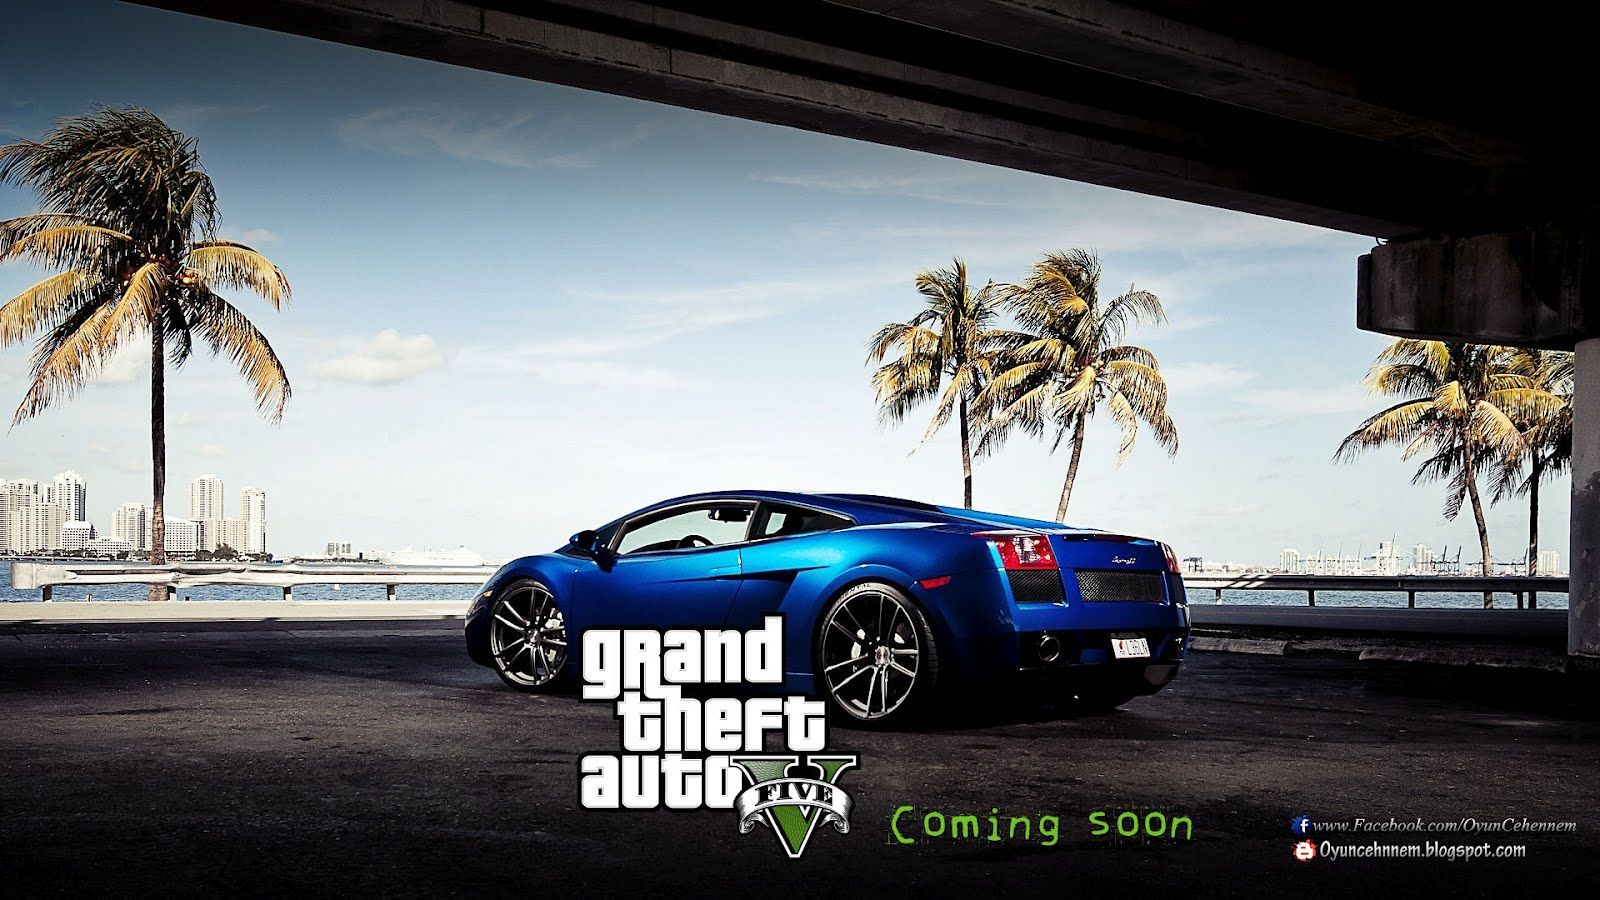 Gta 5 Car Wallpaper High Quality Resolution ~ Sdeerwallpaper